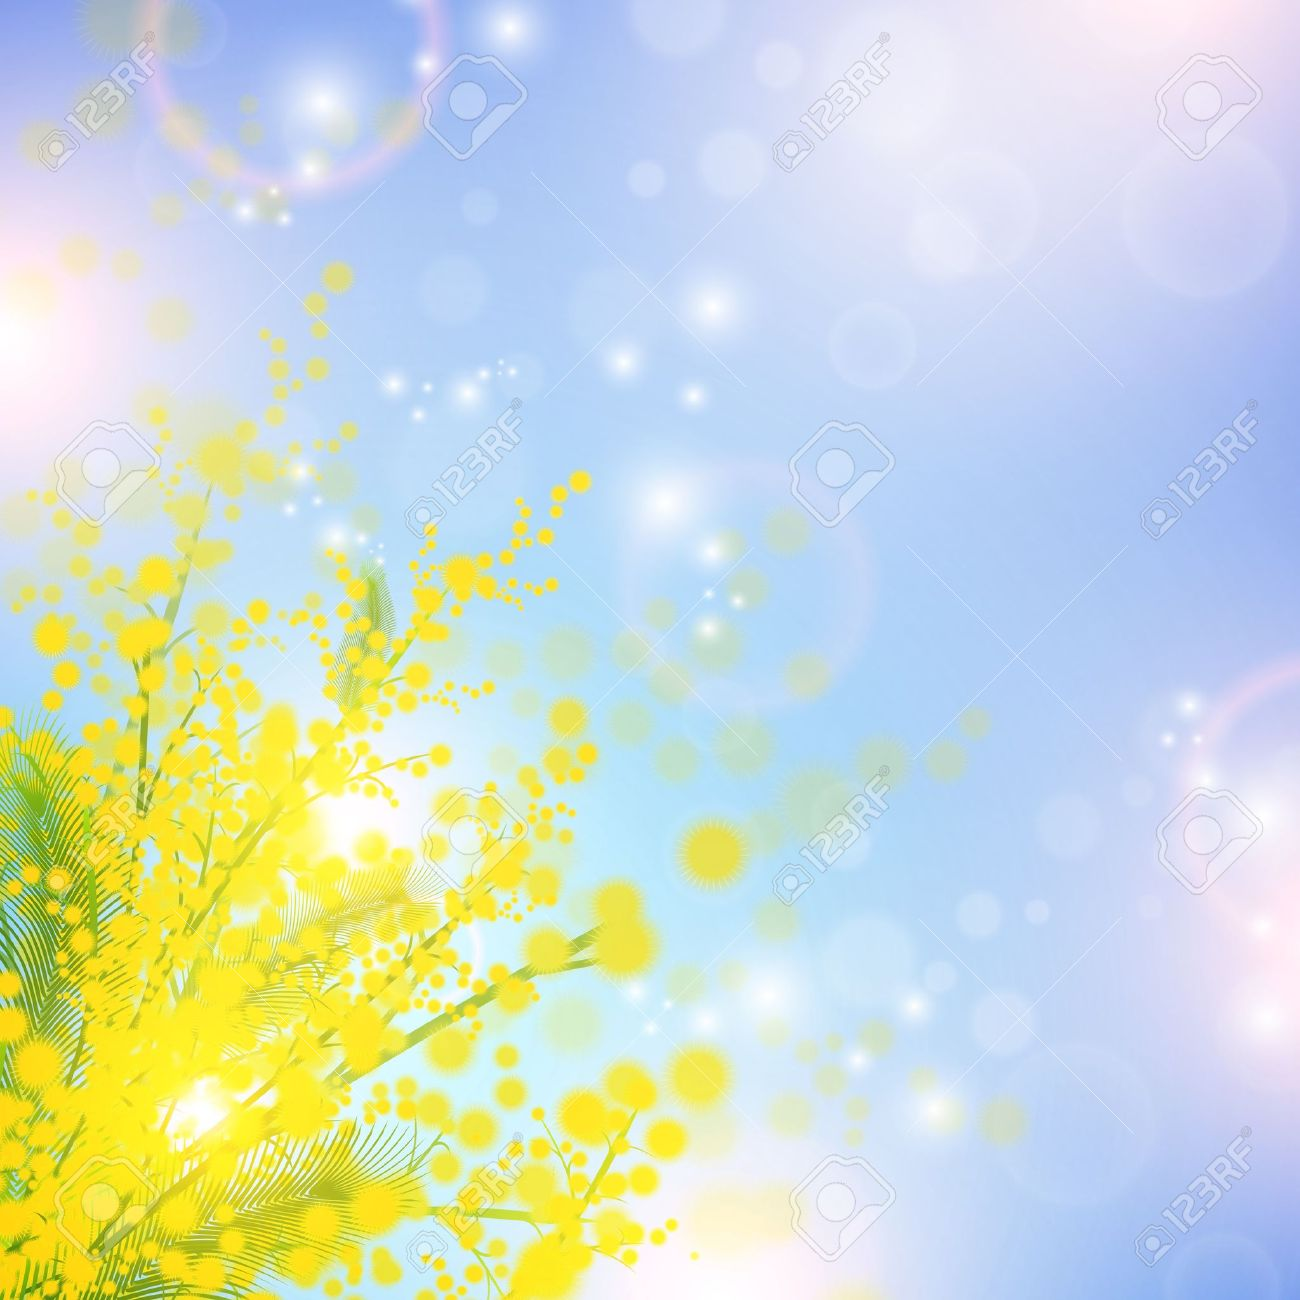 Mimosa flowers over blue sky and magic spring lights - 12250537